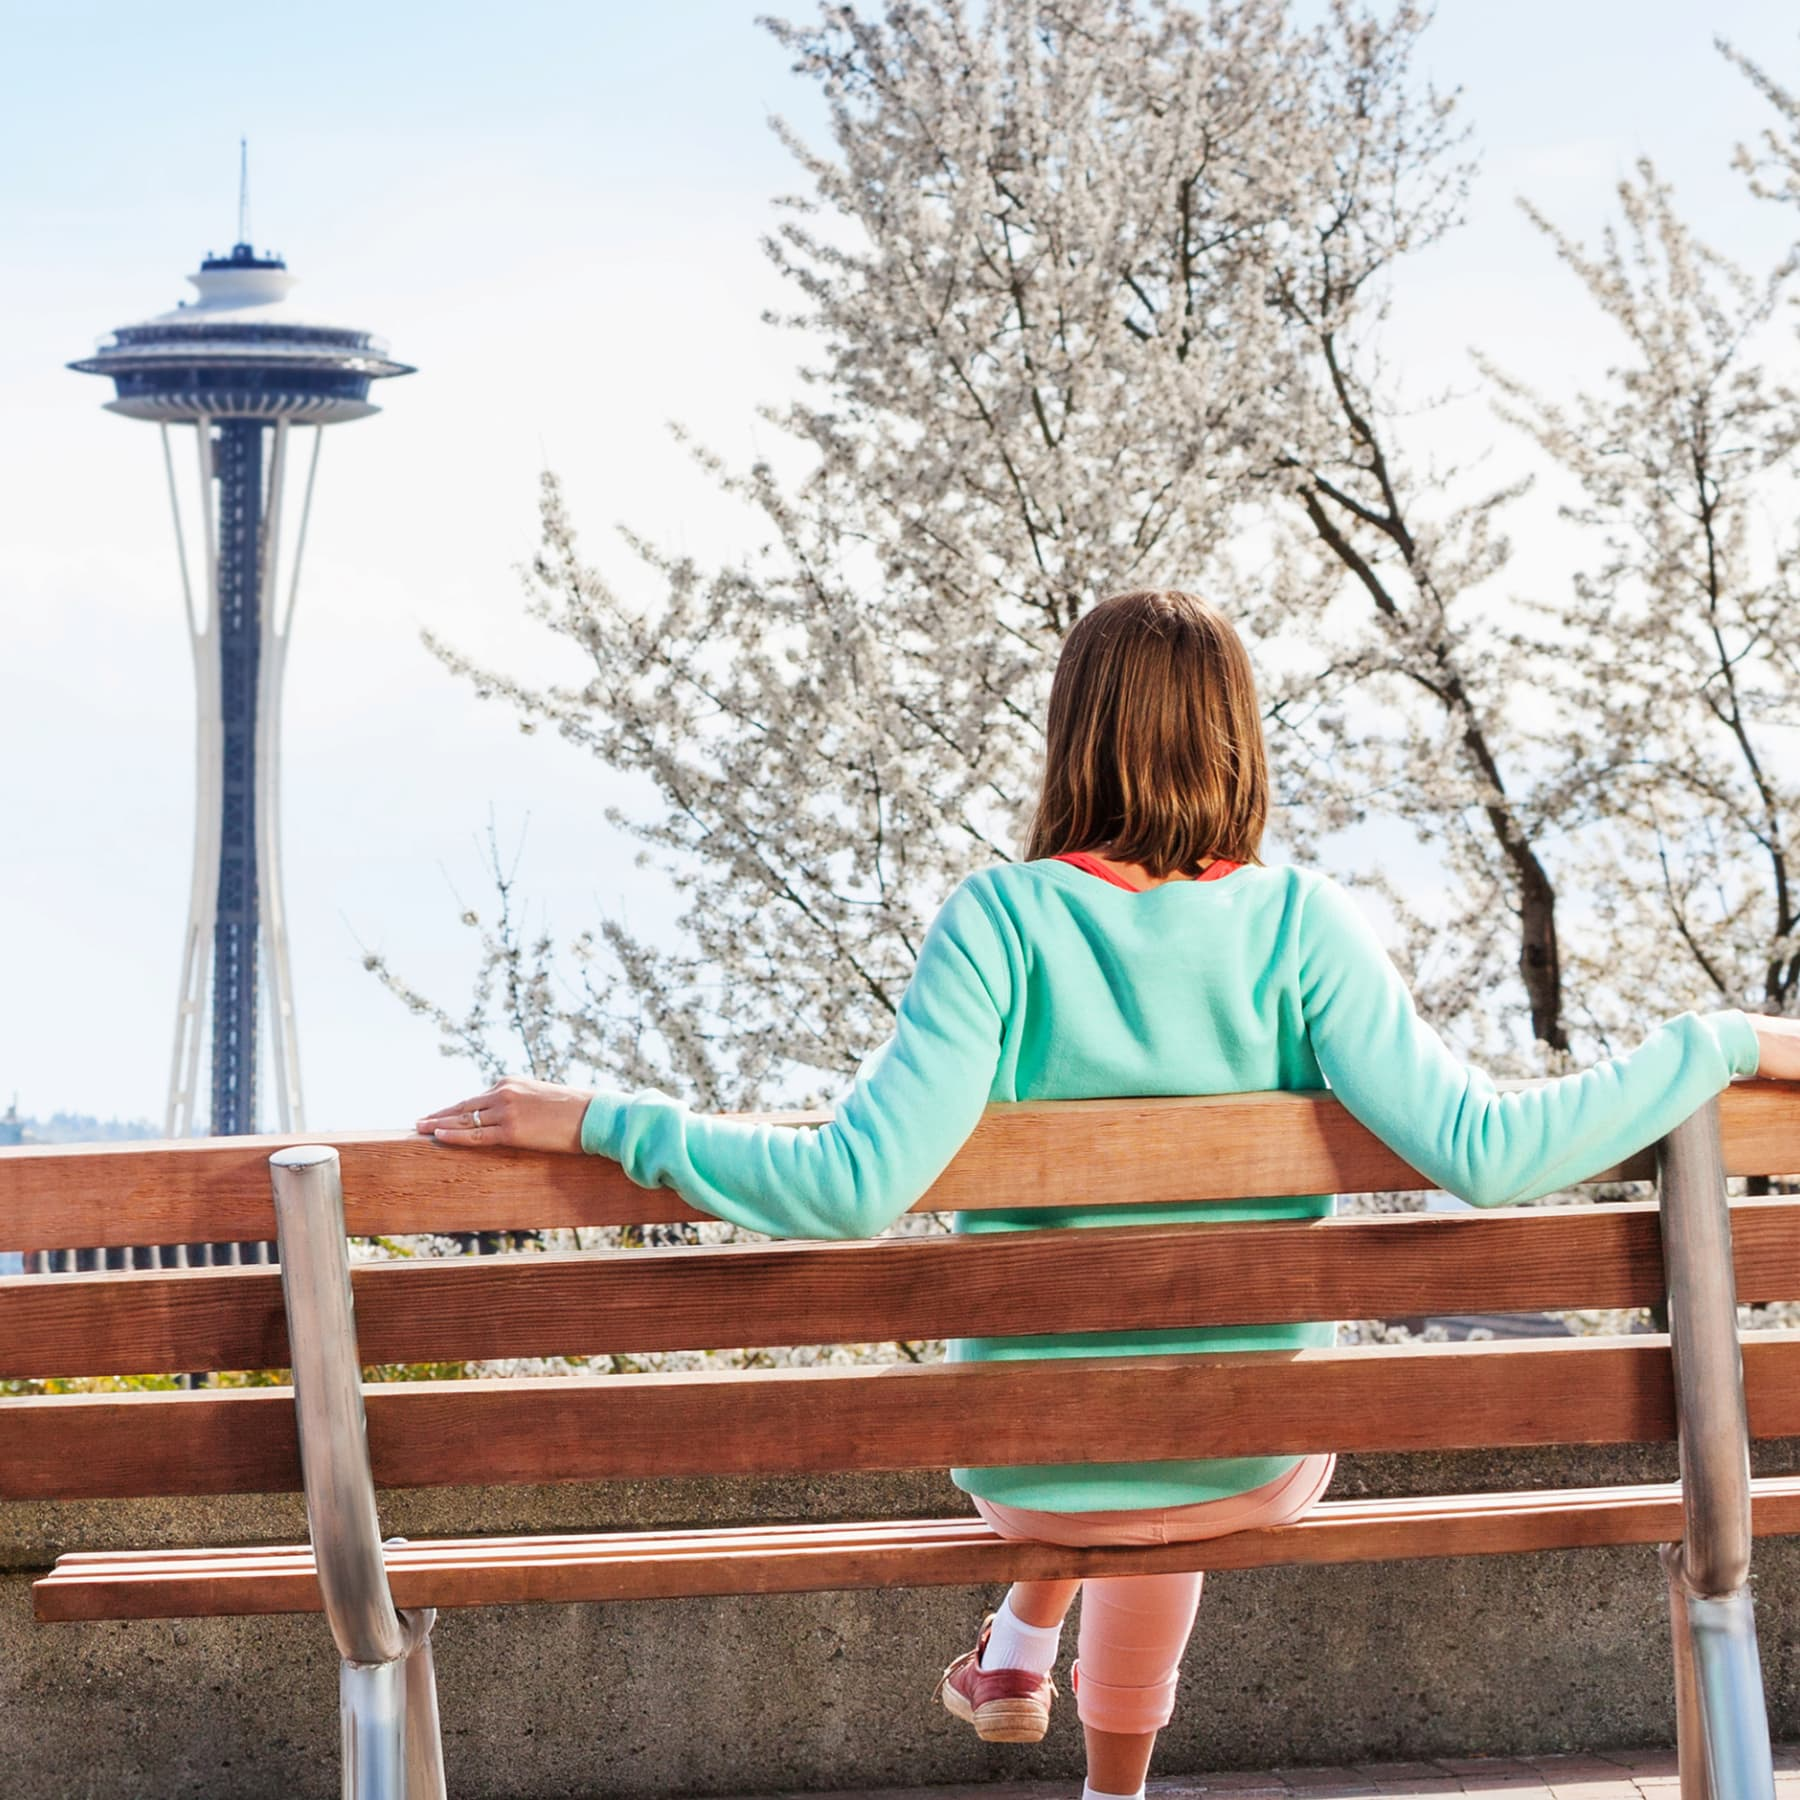 A woman sits alone on a bench in seattle, wa.